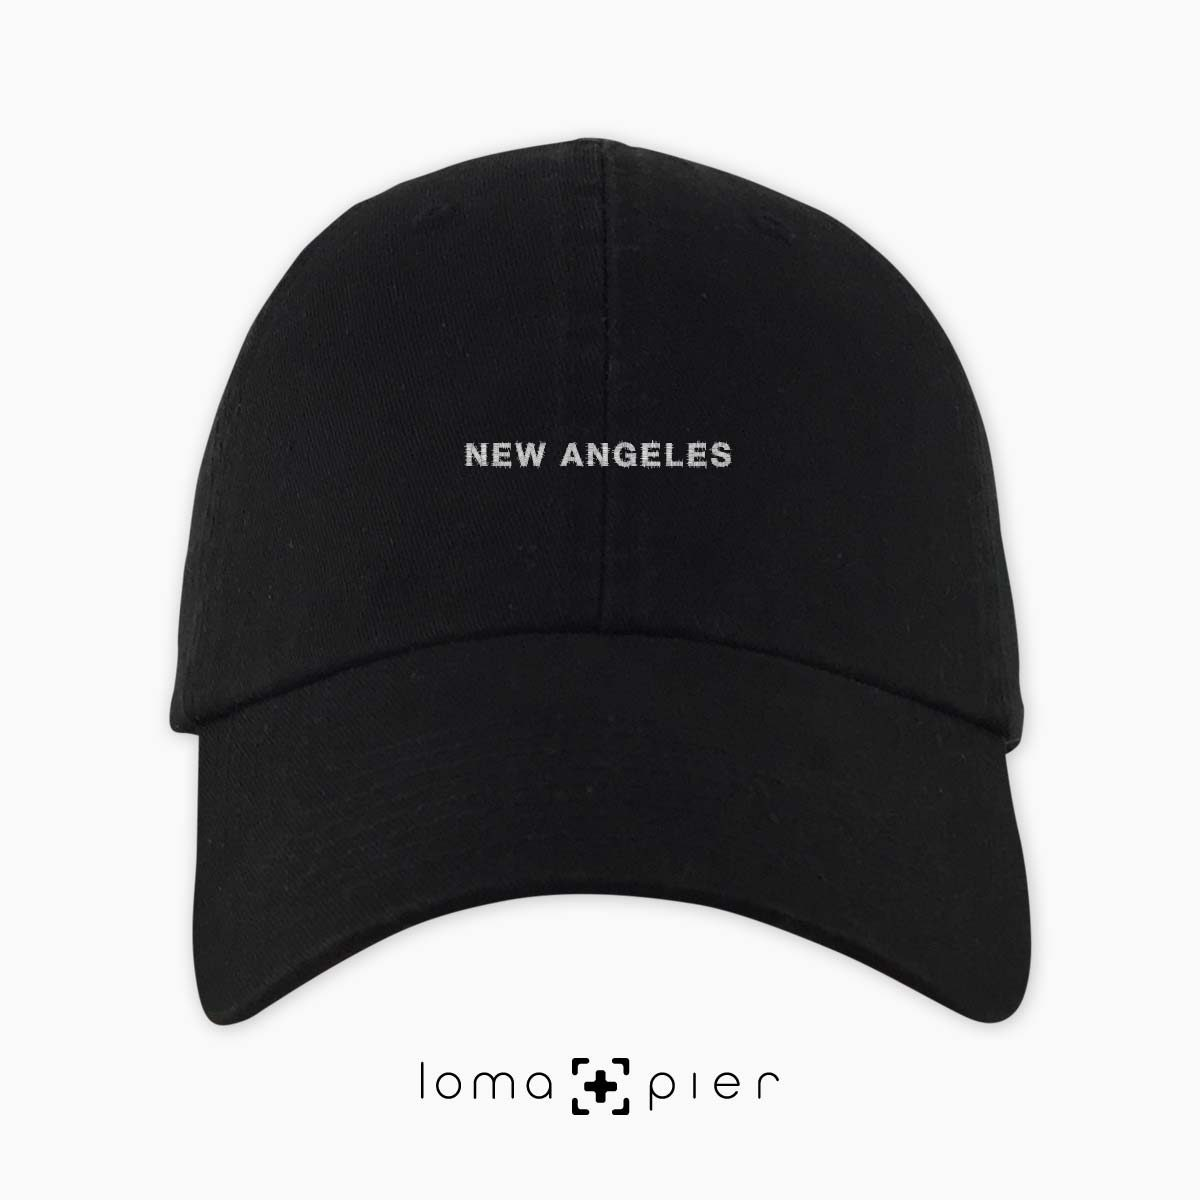 NEW ANGELES typography embroidered black dad hat white thread loma+pier hat store made in USA